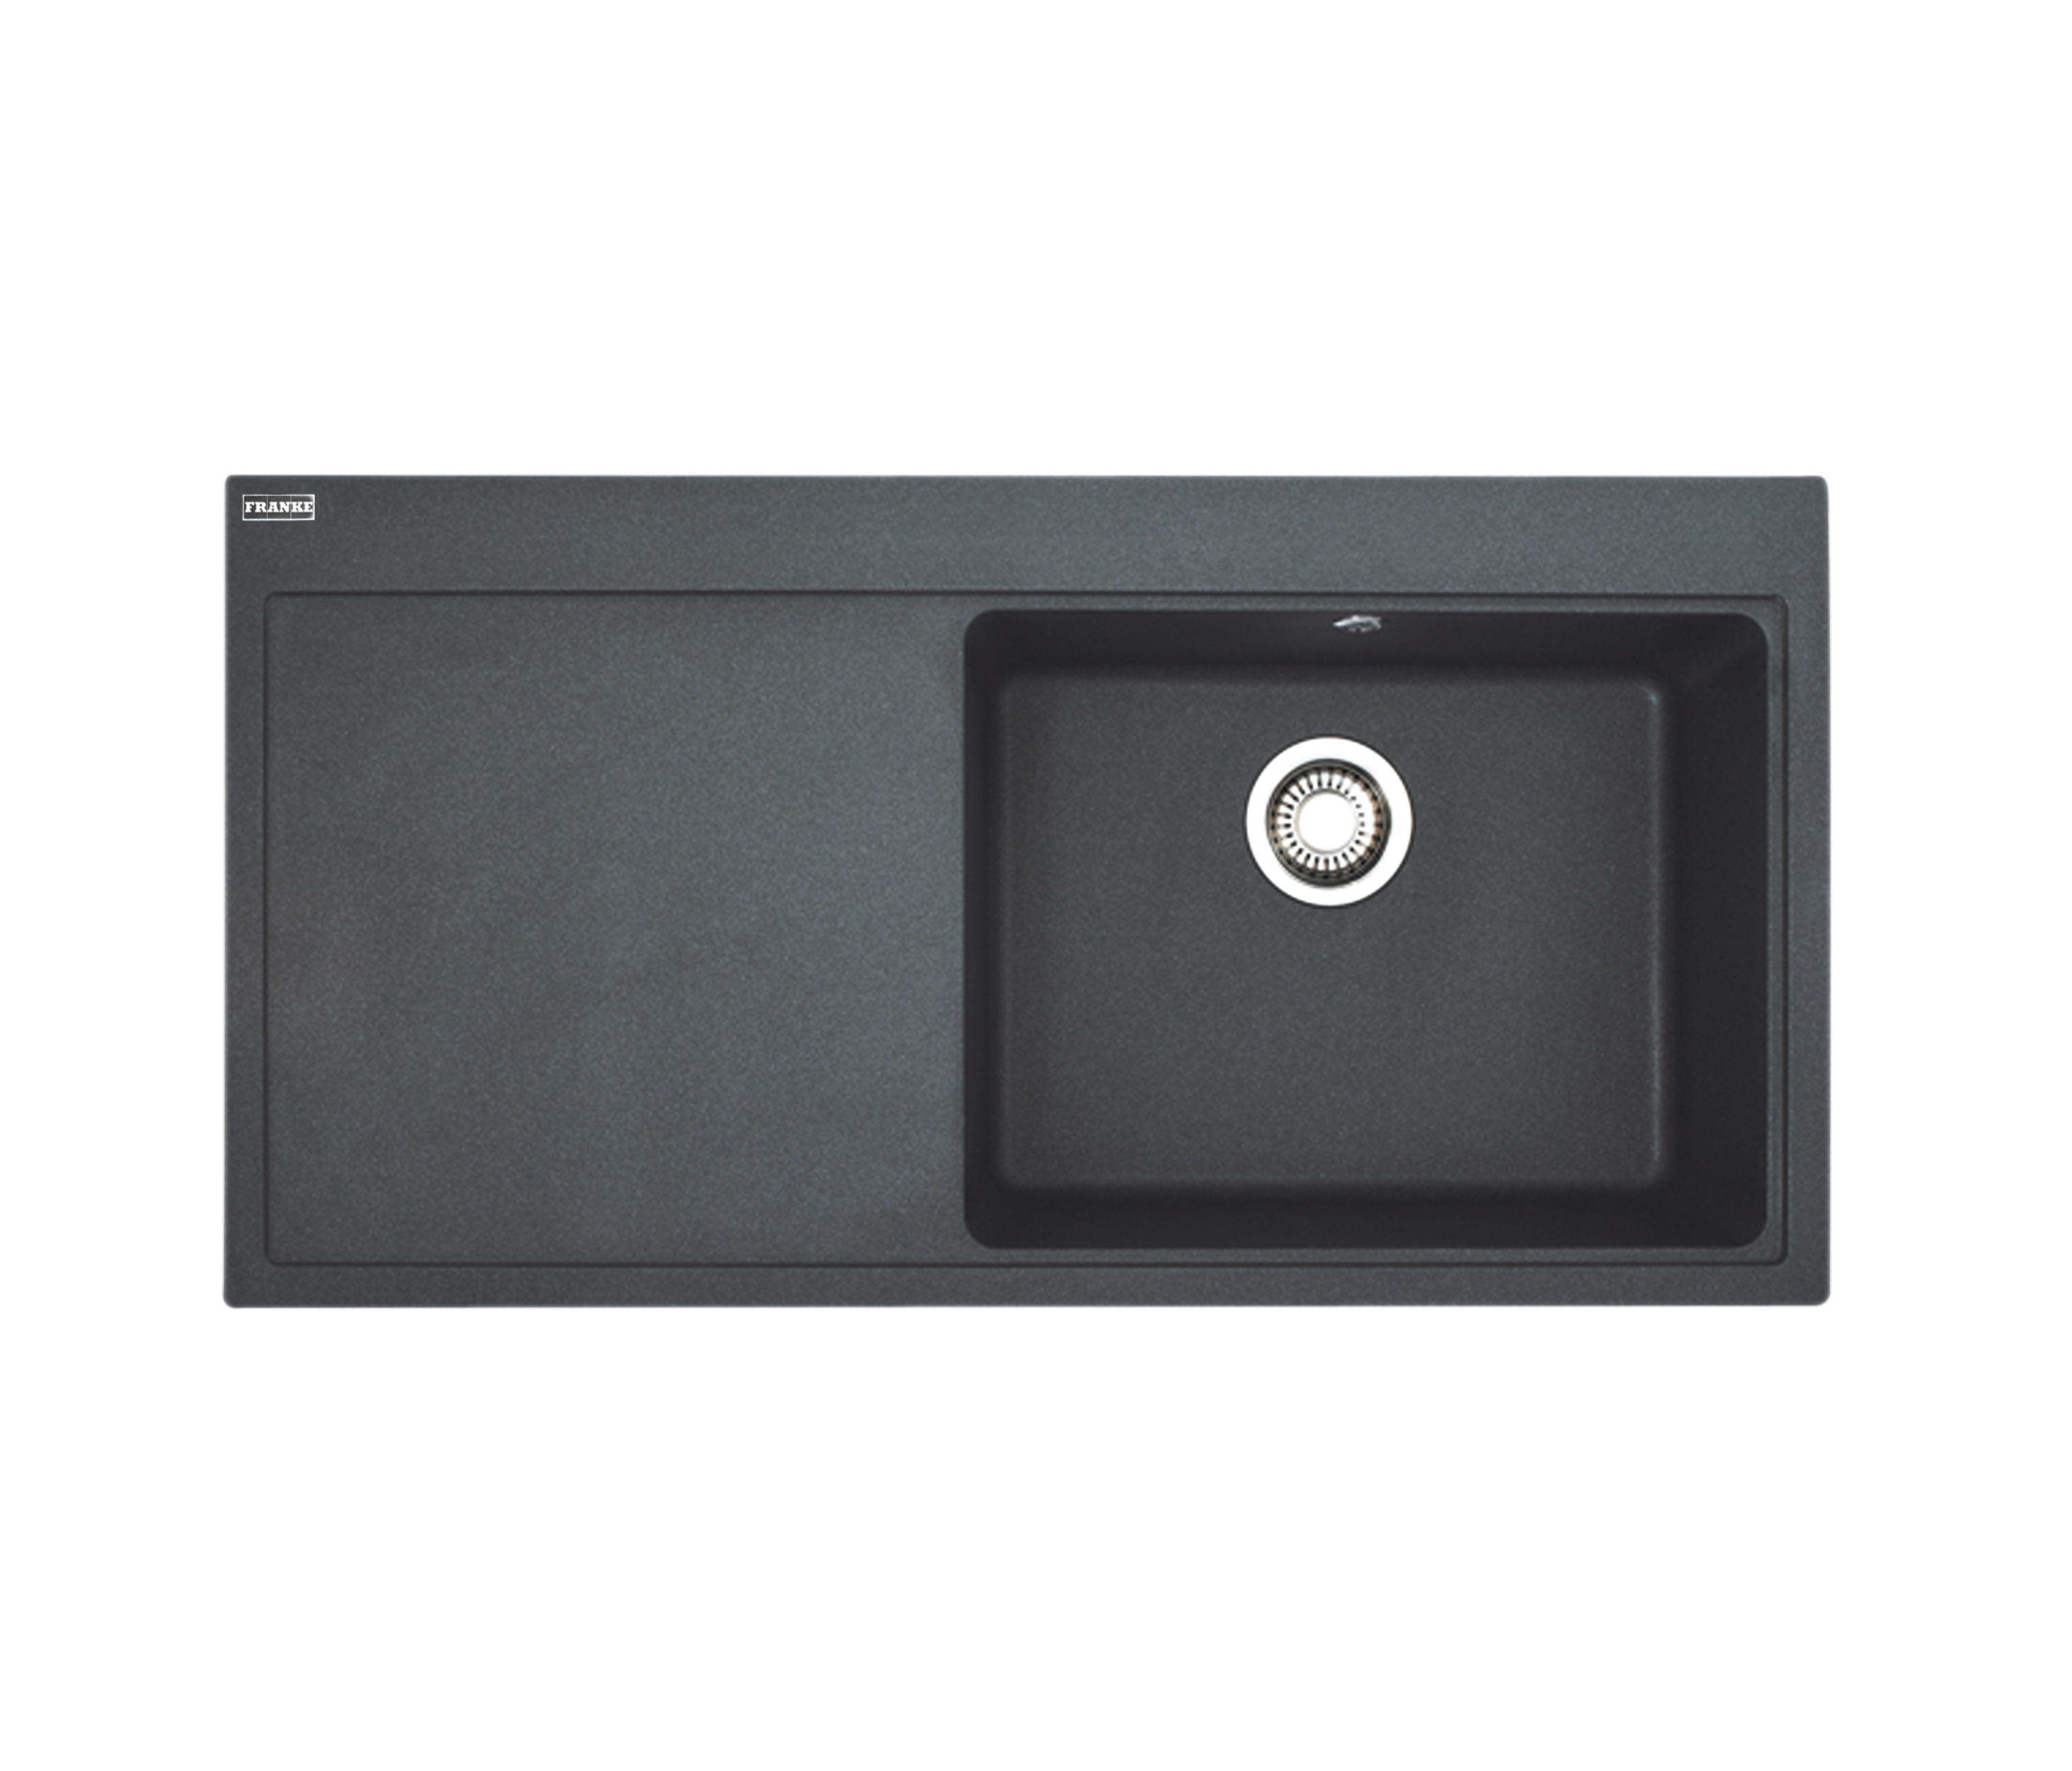 franke kitchen sinks commercial fan extractor mythos sink mtg 611 fragranit graphit from by systems